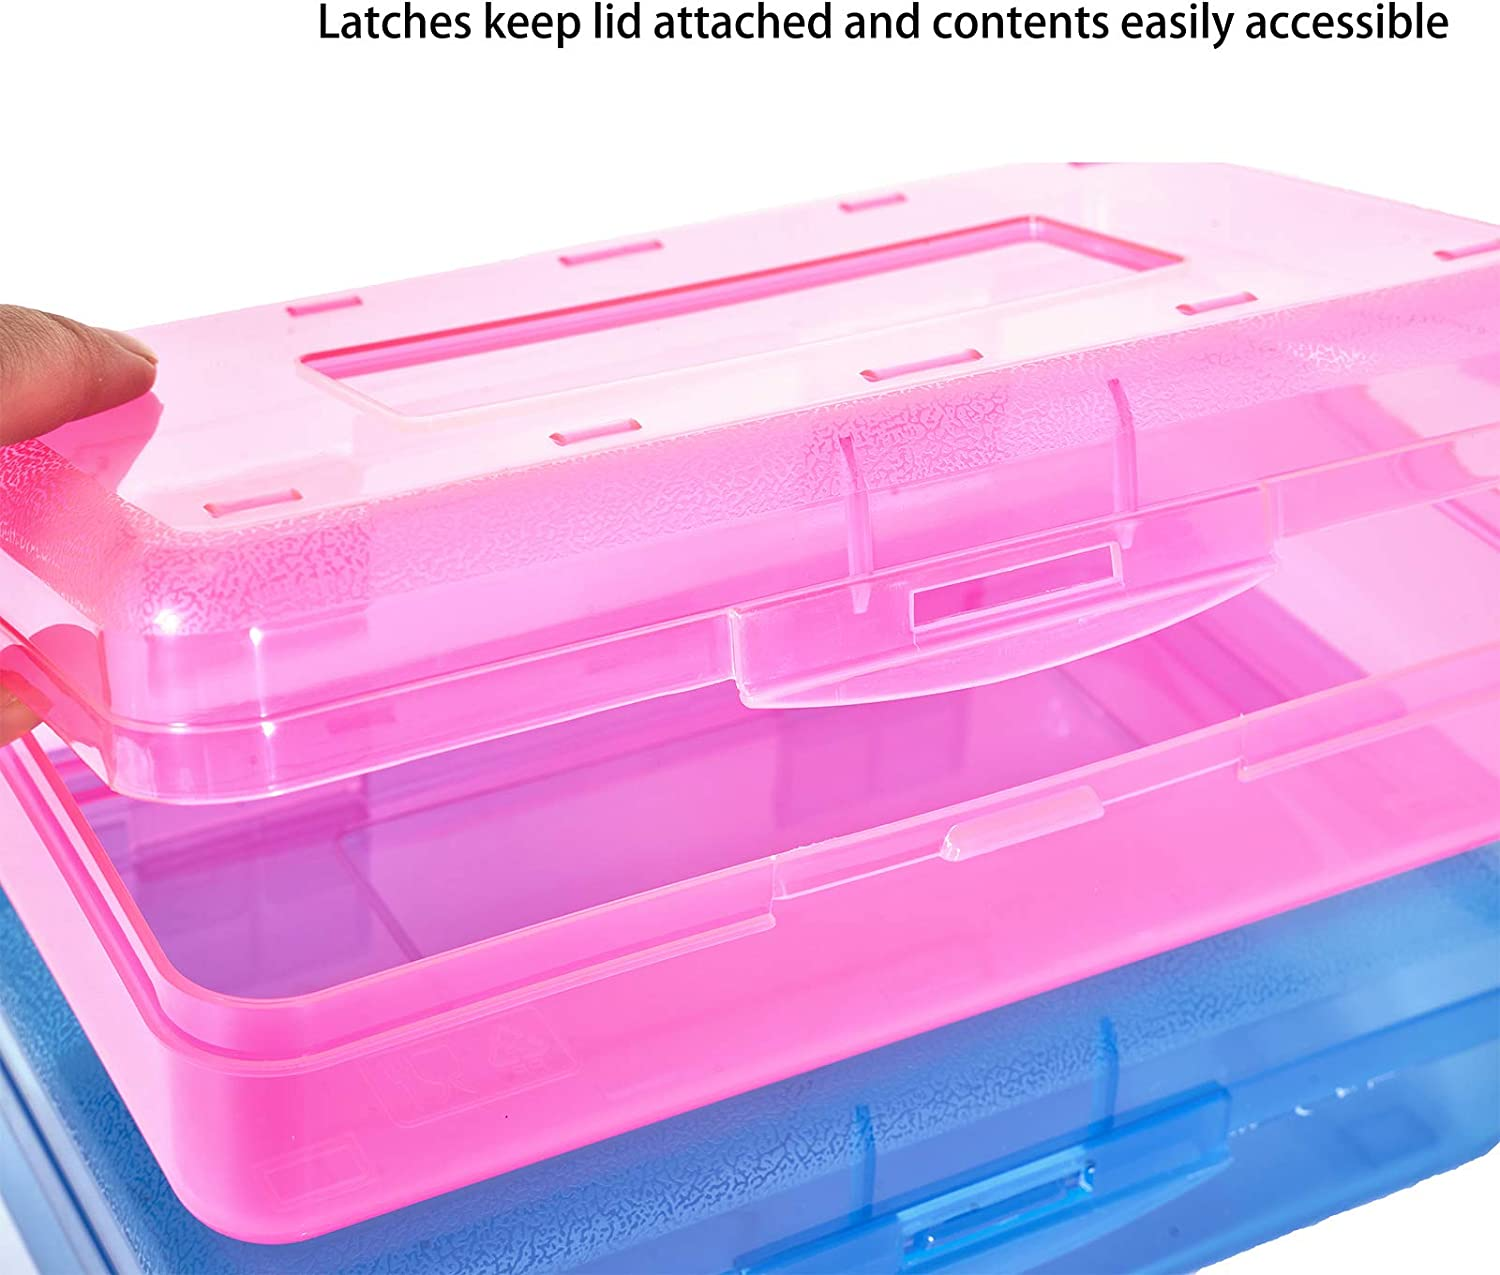 Gamenote Assorted Colors Plastic Pencil Case Box with Lid Snap Closure 3 Colors 6 Pack Large Capacity School Supplies Storage Organizer Box for Kids